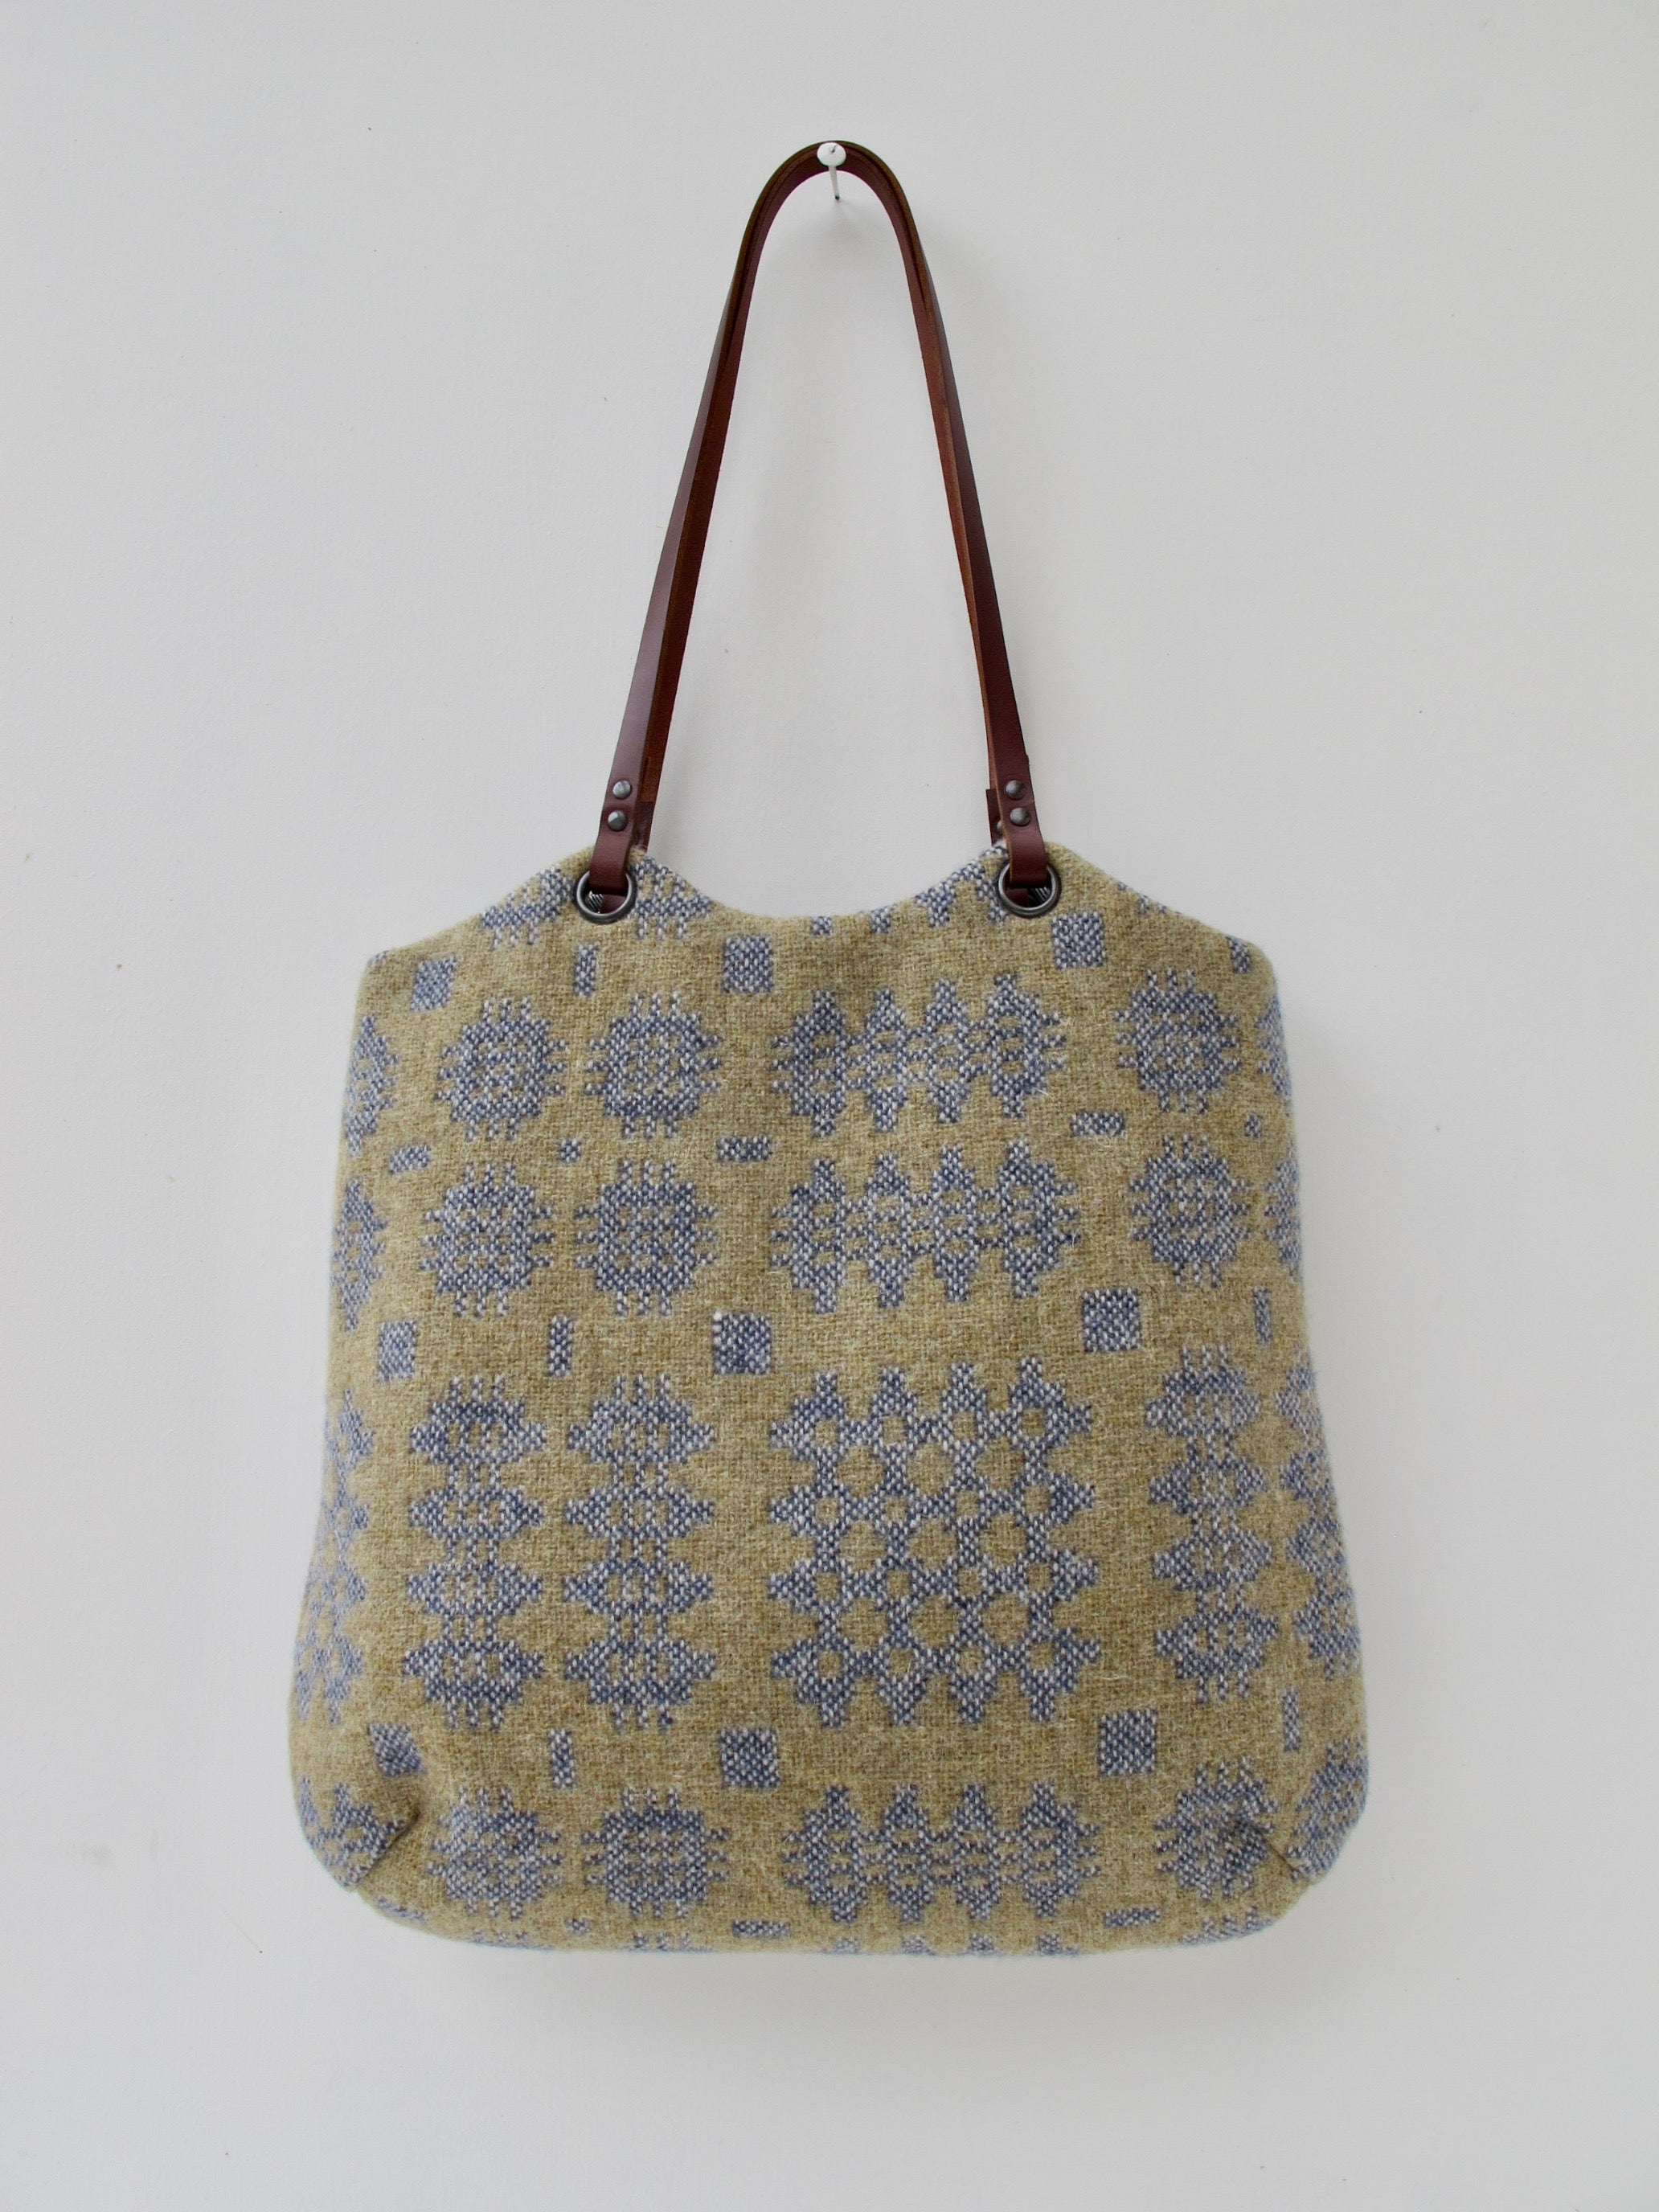 NEW Tapestry Tote - Sand & Denim I